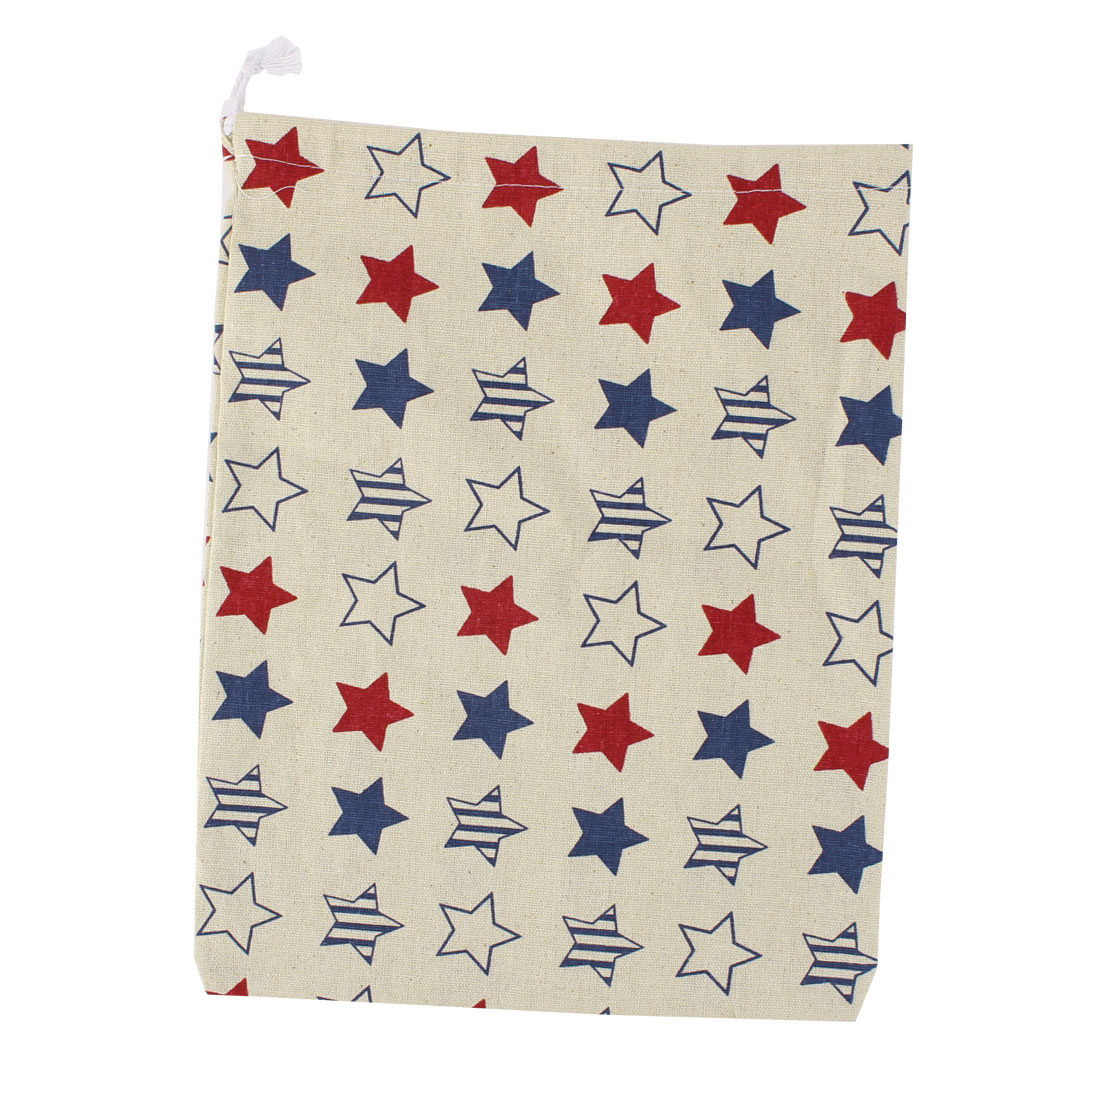 Household Travel Cotton Linen Star Pattern Storage Packing Bag Drawstring Pouch Holder